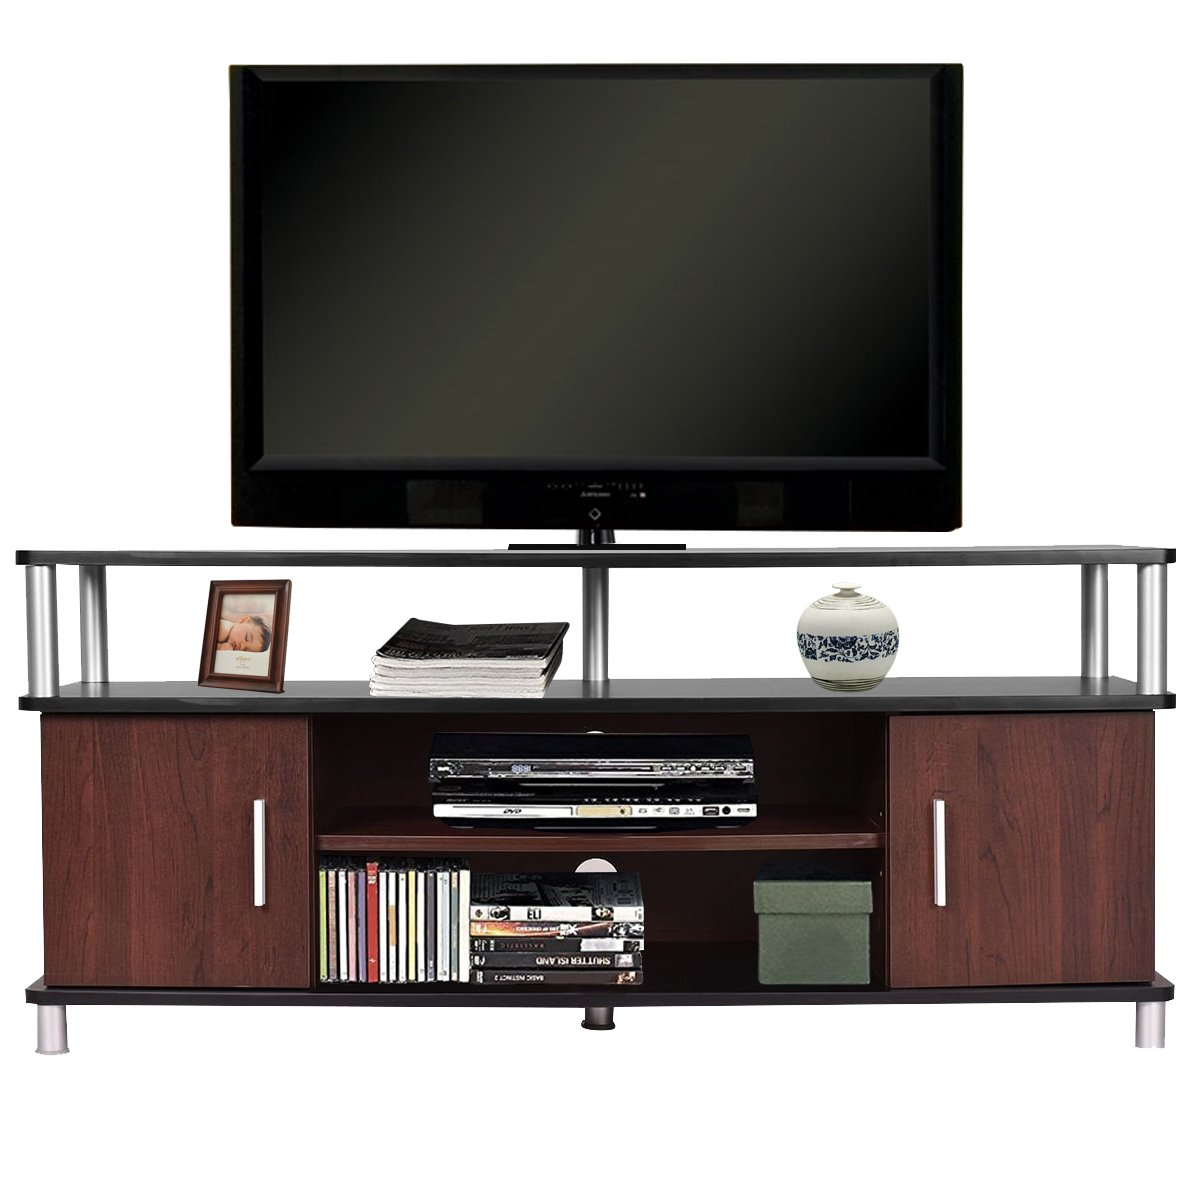 TANGKULA Universal TV Stand Wood TV Media Stand Storage Console with Storage Cabinets & Shelves for Home Office Sturdy & Stable Wood Frame Display Cabinet 47'' Wide TV Entertainment Center Console